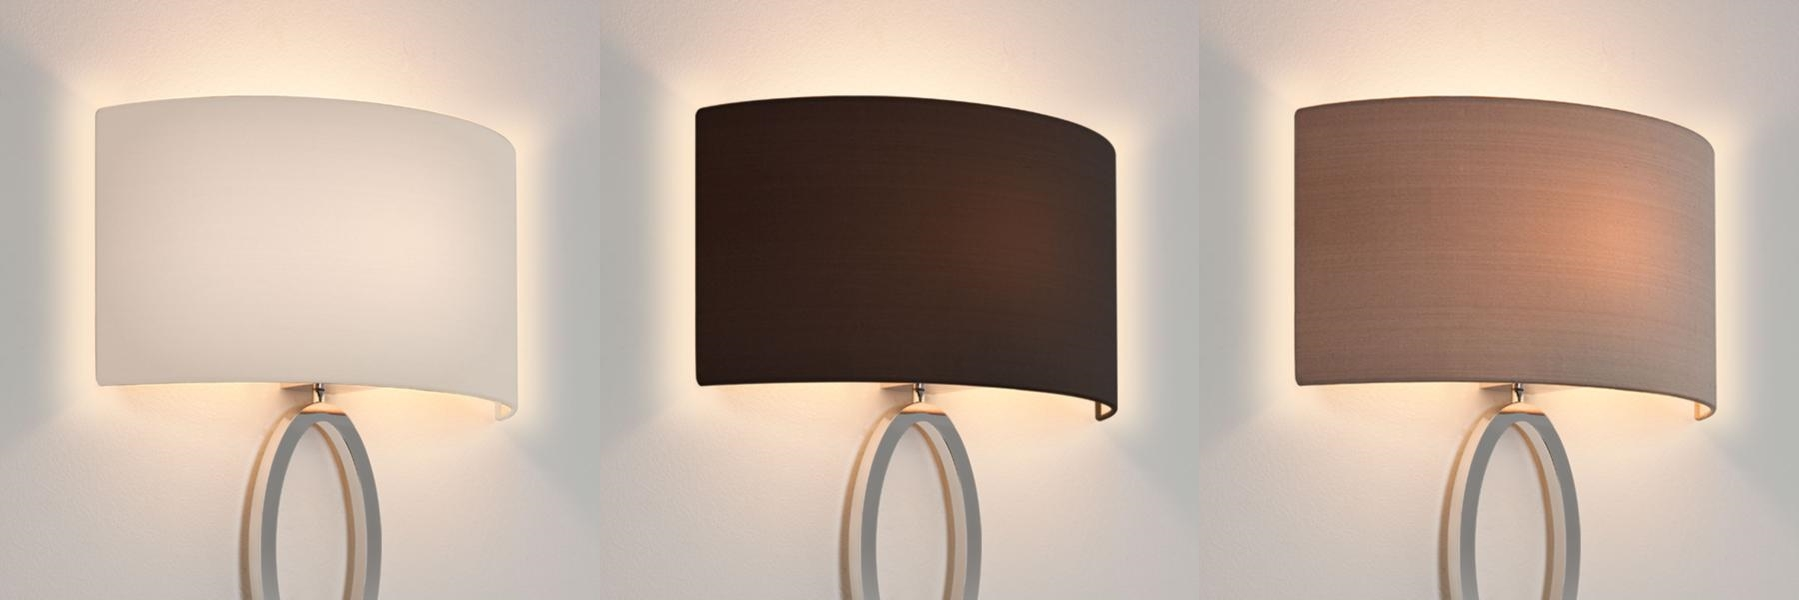 Wall Sconces With Half Shades : Astro Lima fabric half lampshade for wall light with E27 / ES shade ring eBay